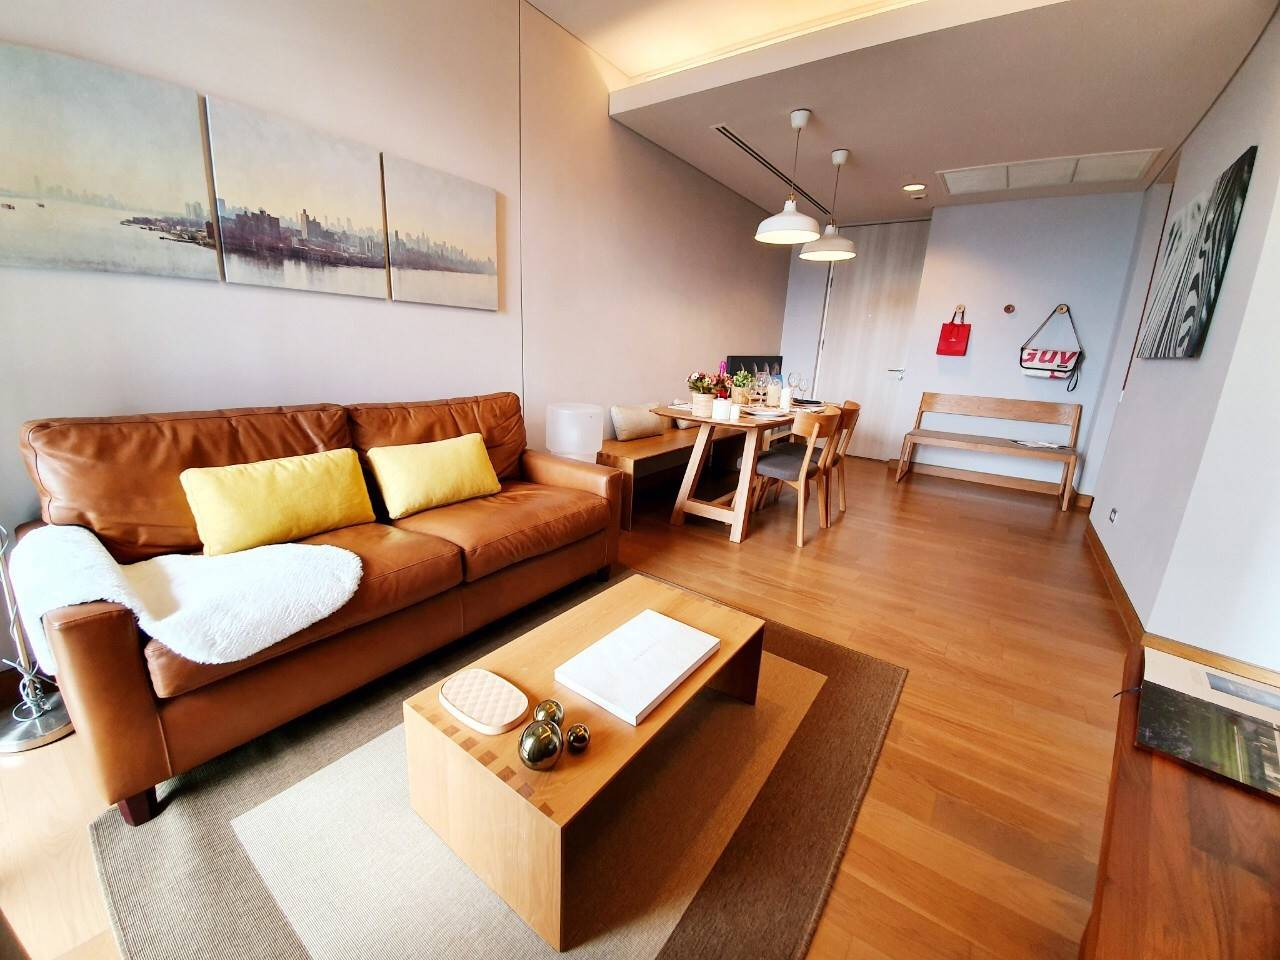 LTH3448 -The Lumpini 24 FOR RENT 2 beds 2 baths size 55.02 Sq.M. Nearby BTS Phrom Phong station ONLY 55k/Month